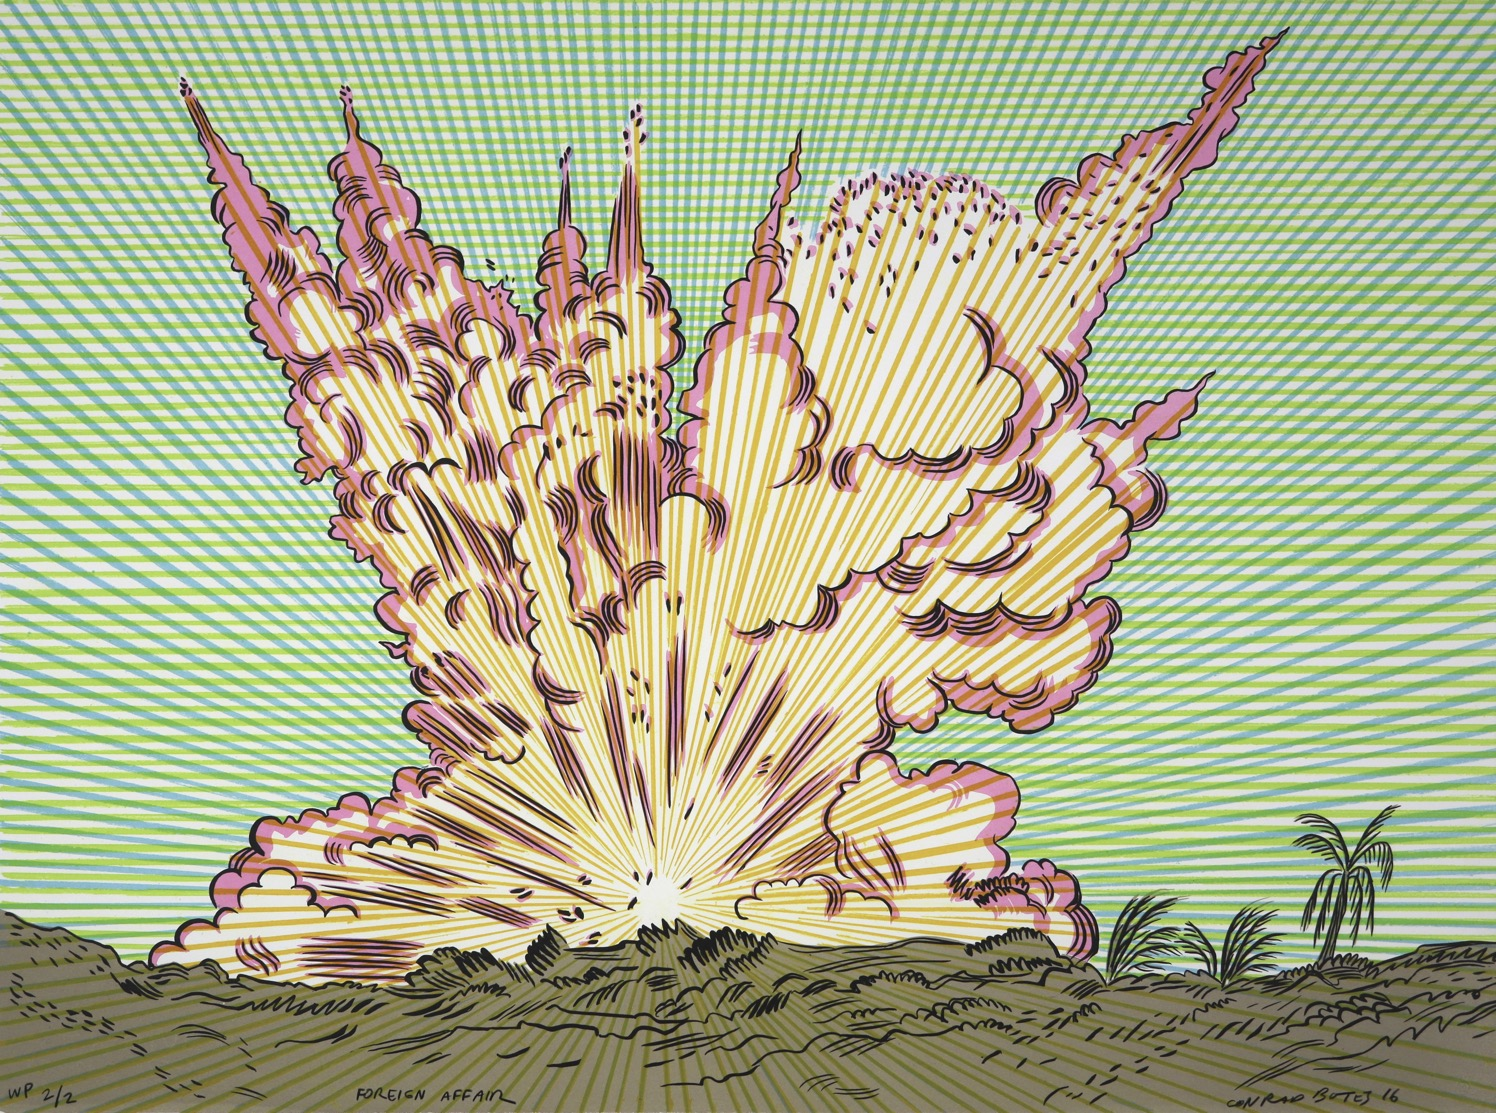 Comic style depiction of an explosion on the horizon of a tropical lanscape